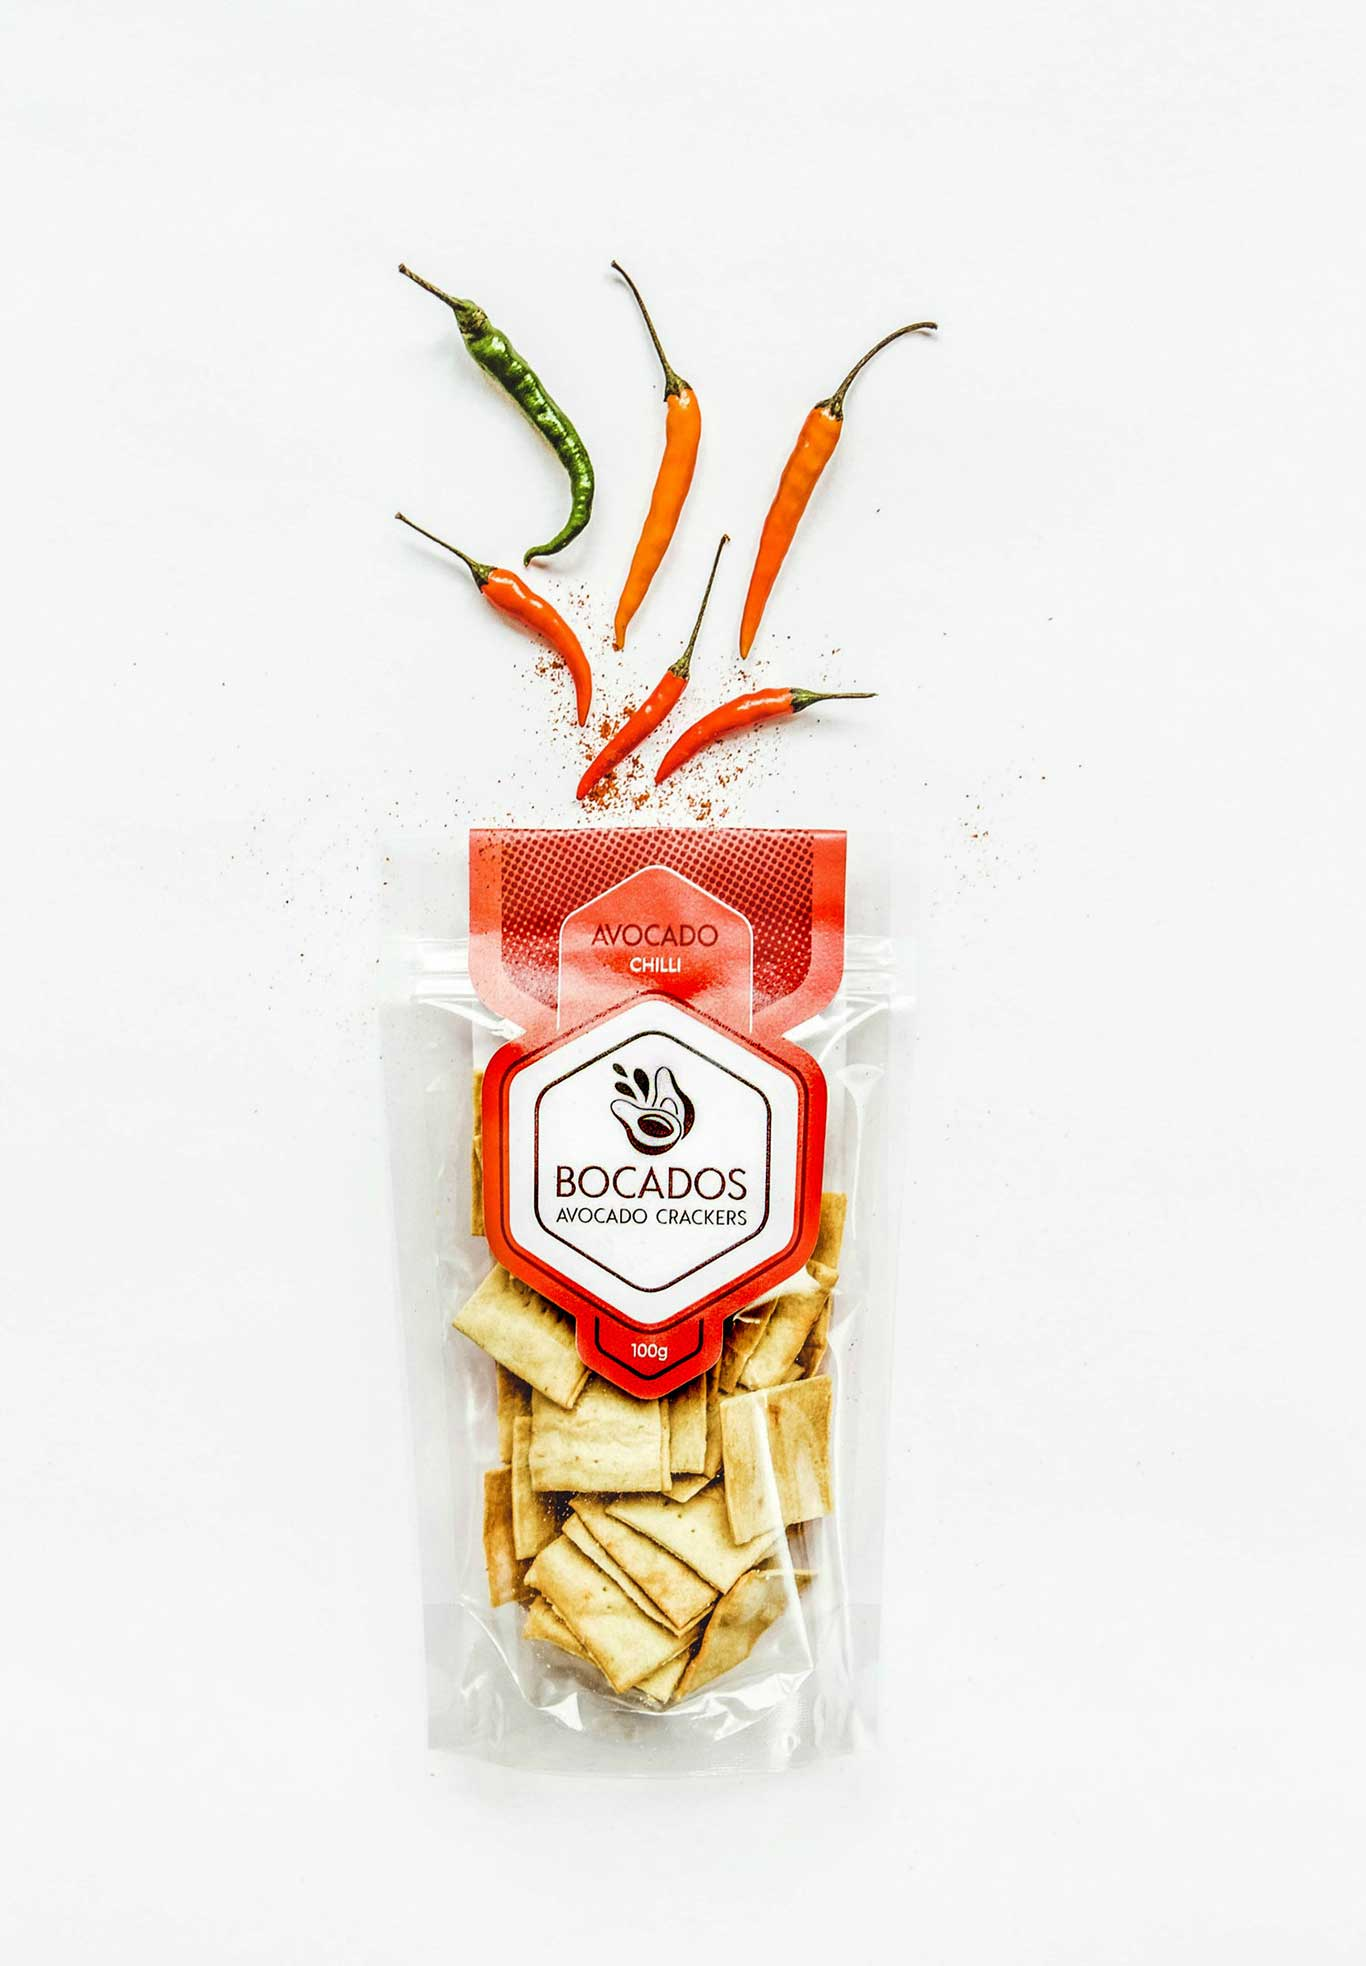 bocados vegan chilli crackers packaging design